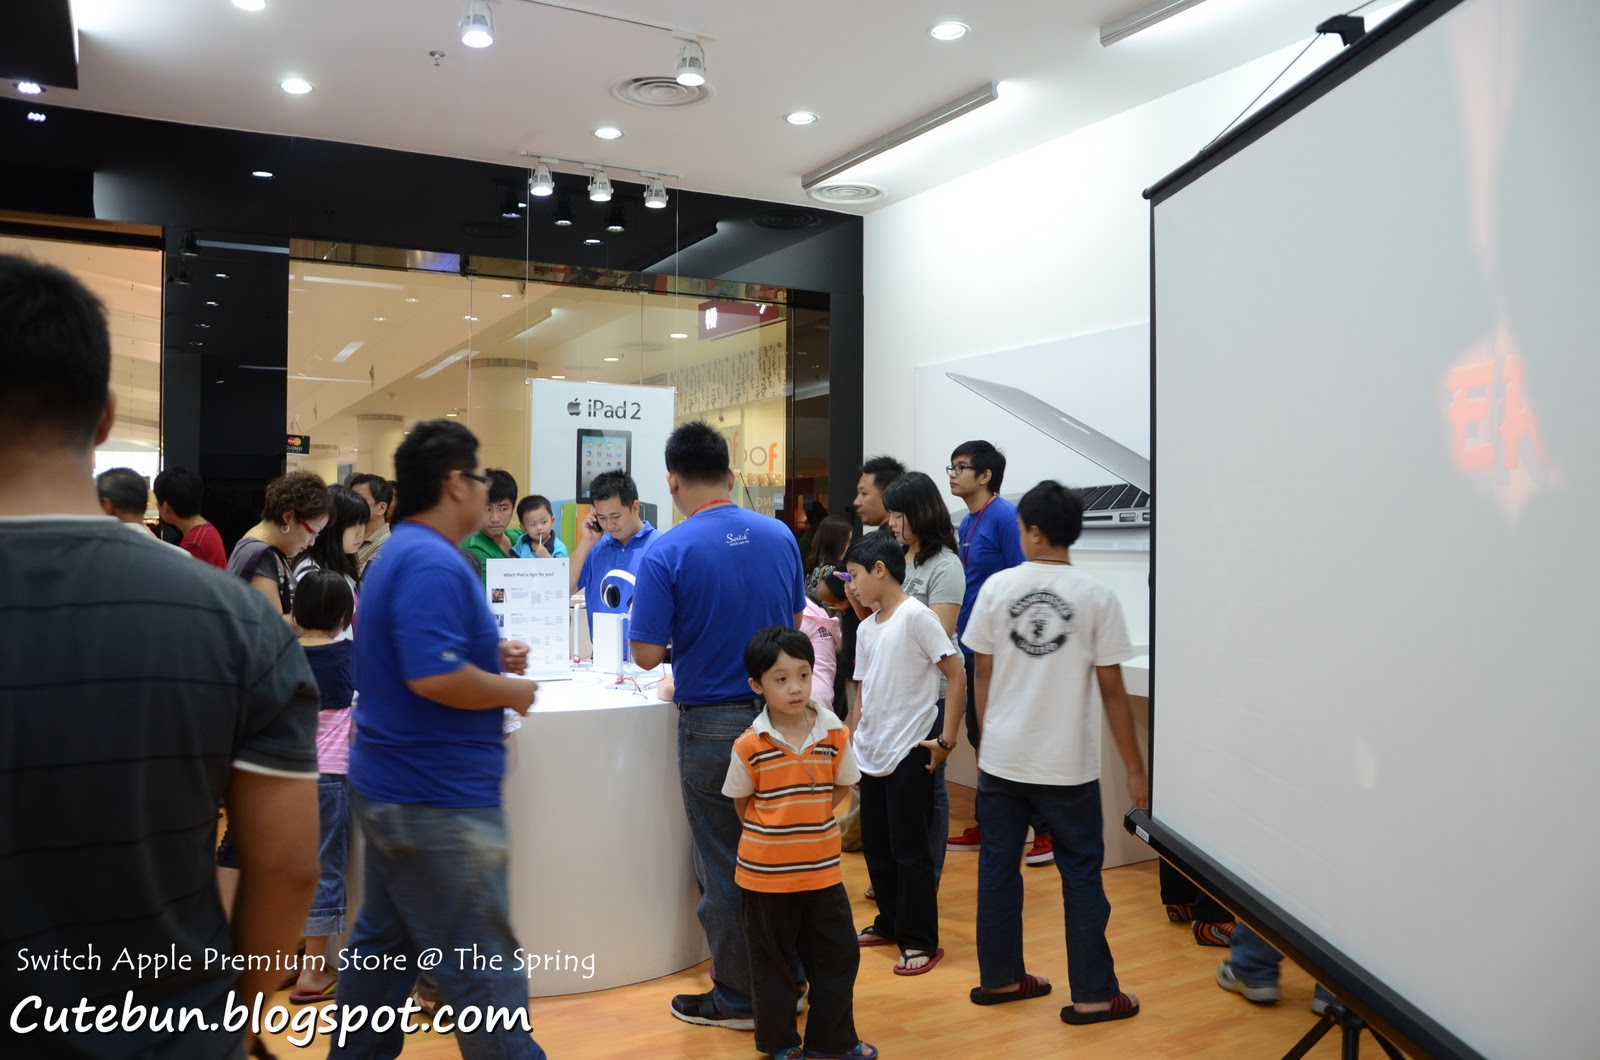 Switch apple premium store now the spring kuching cutebun for Apple store projector